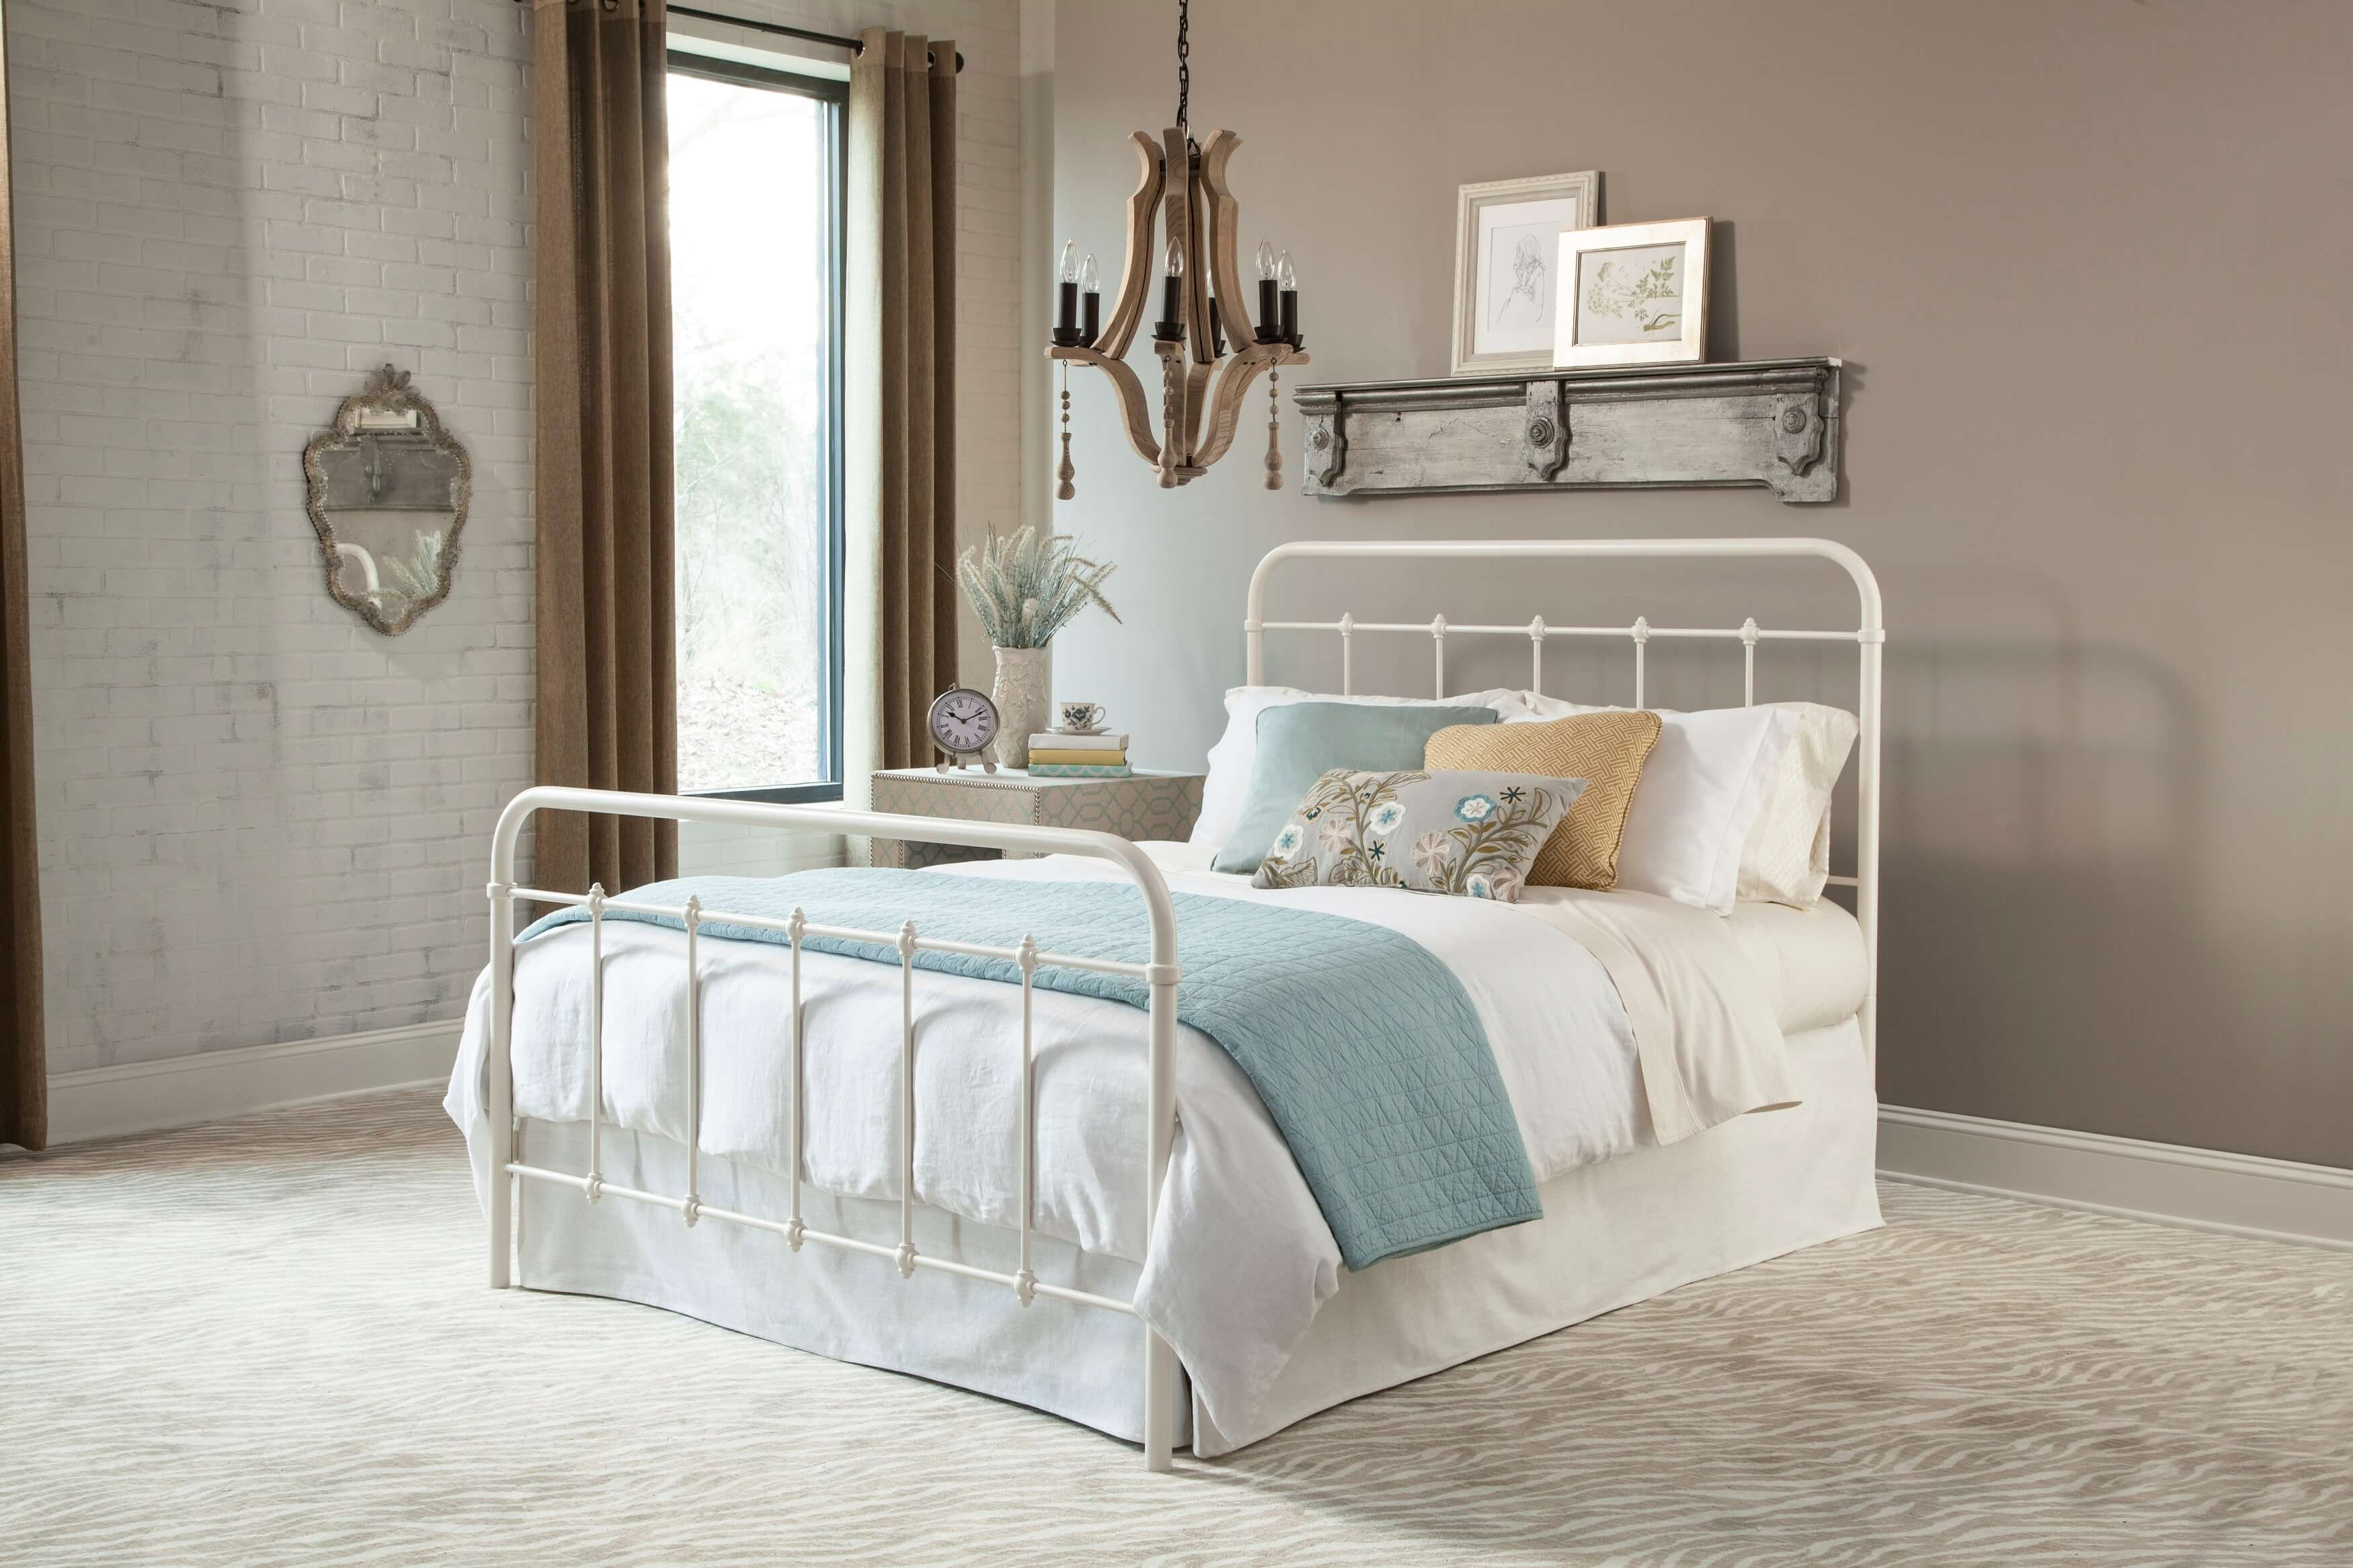 storage sectional sofa bed standard measurements white metal | kids beds